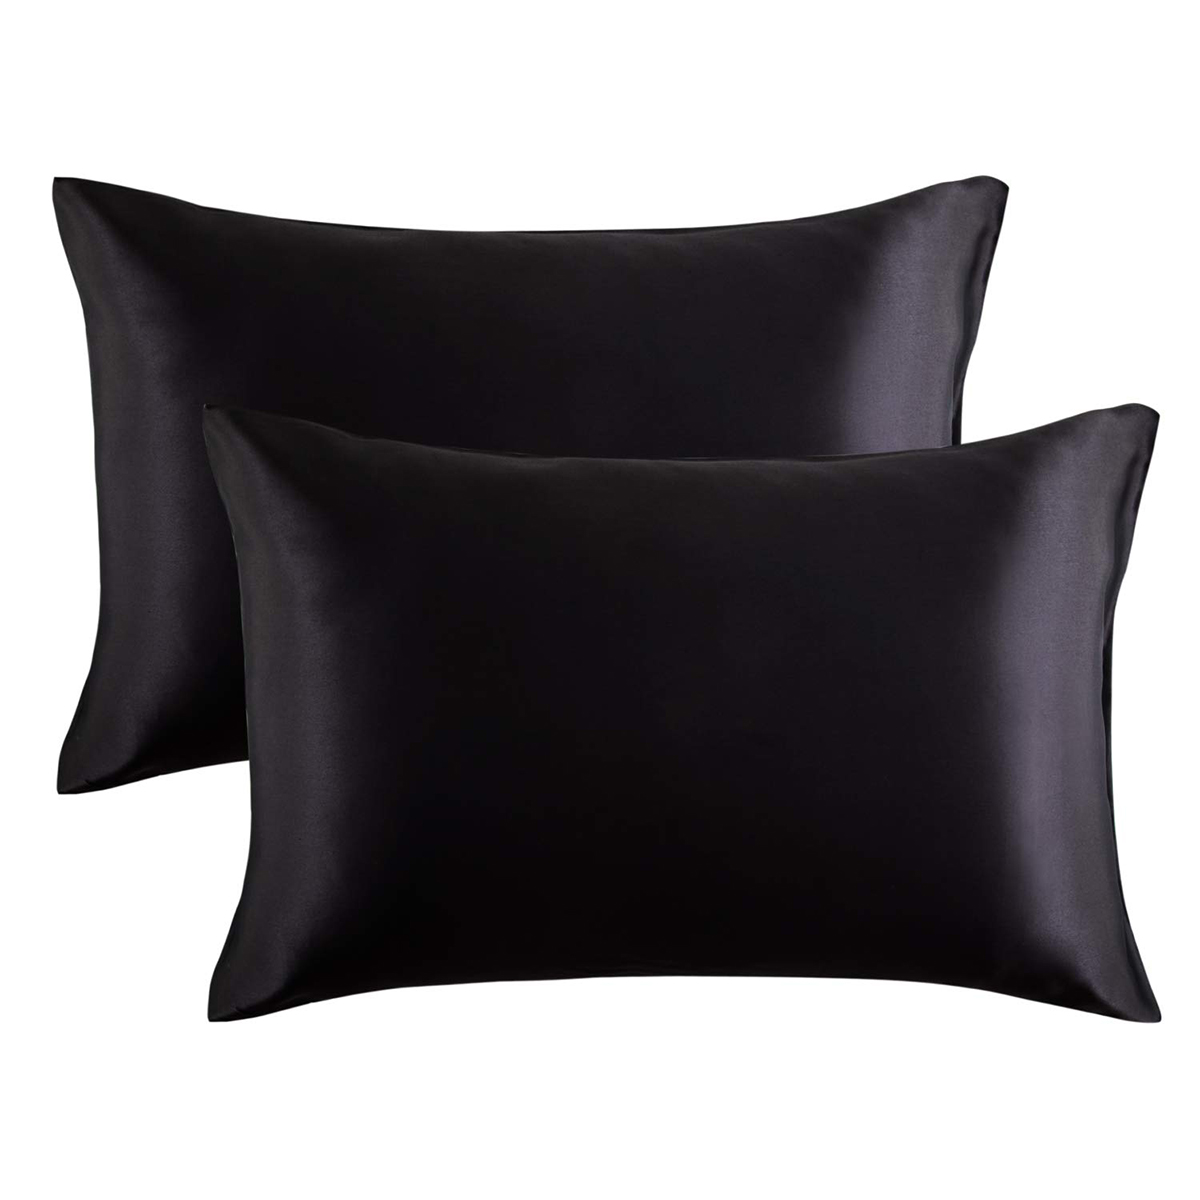 Bedsure Satin Pillowcase for Hair and Skin